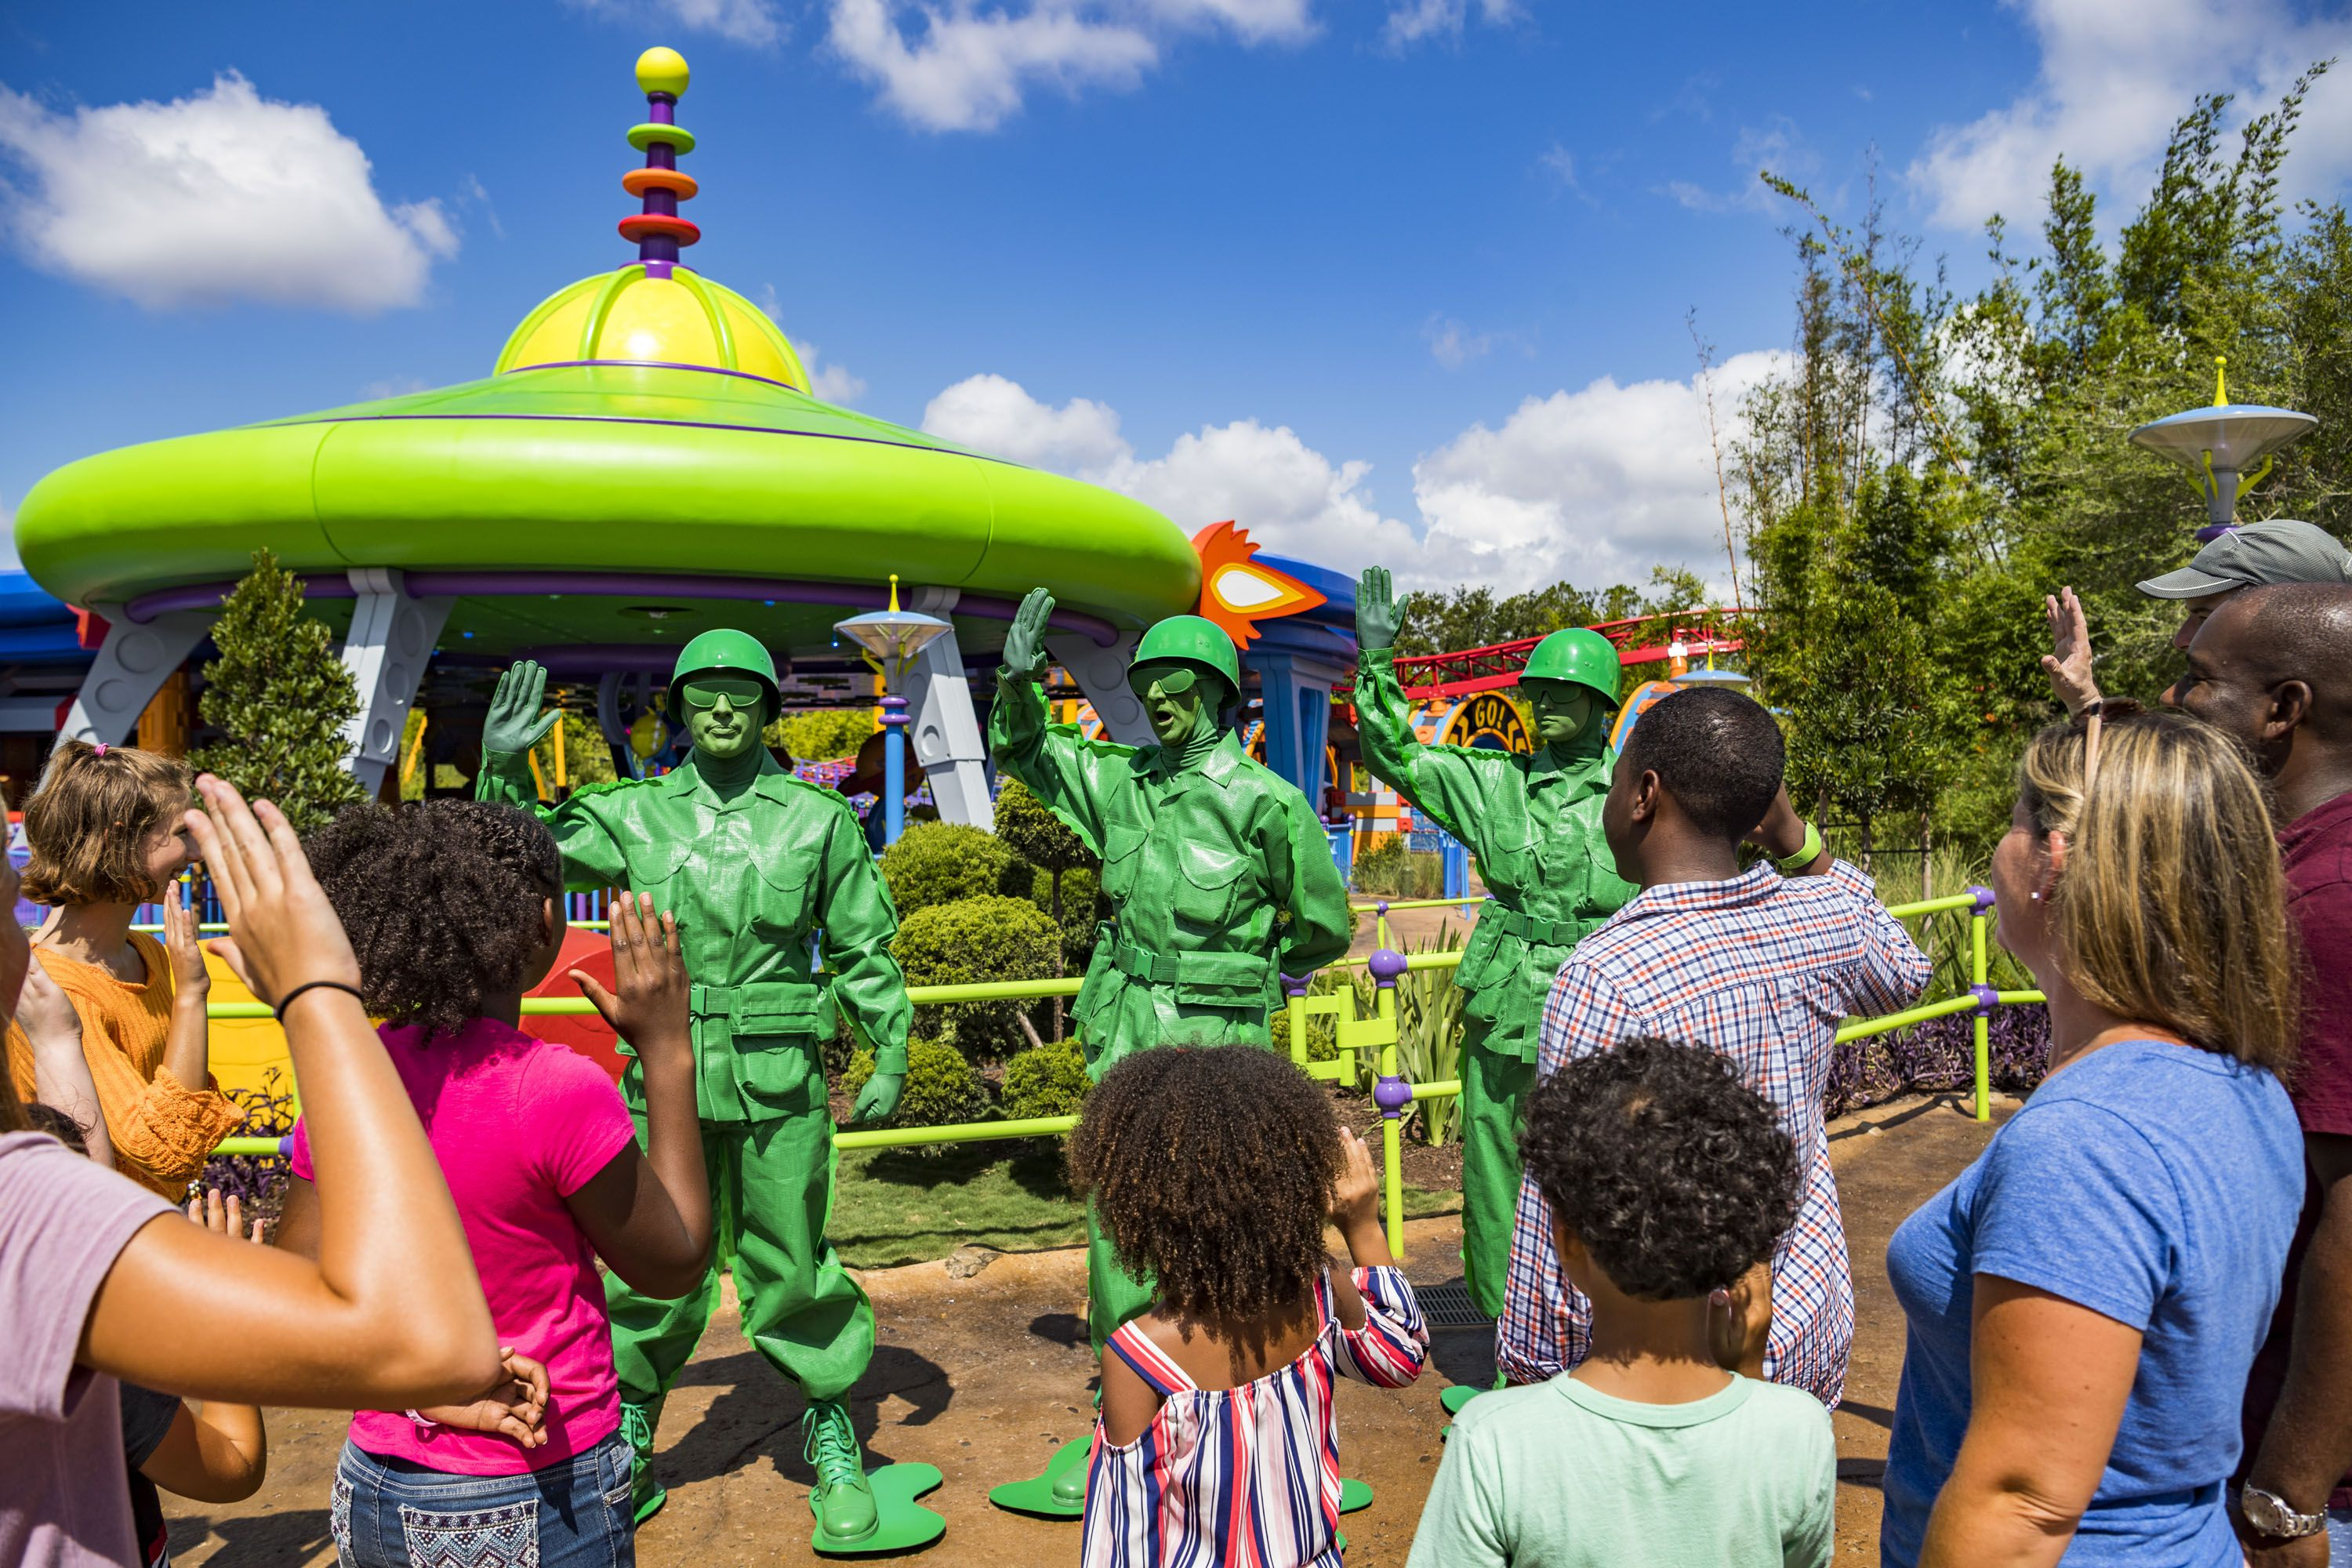 Green Army Men at Toy Story Land